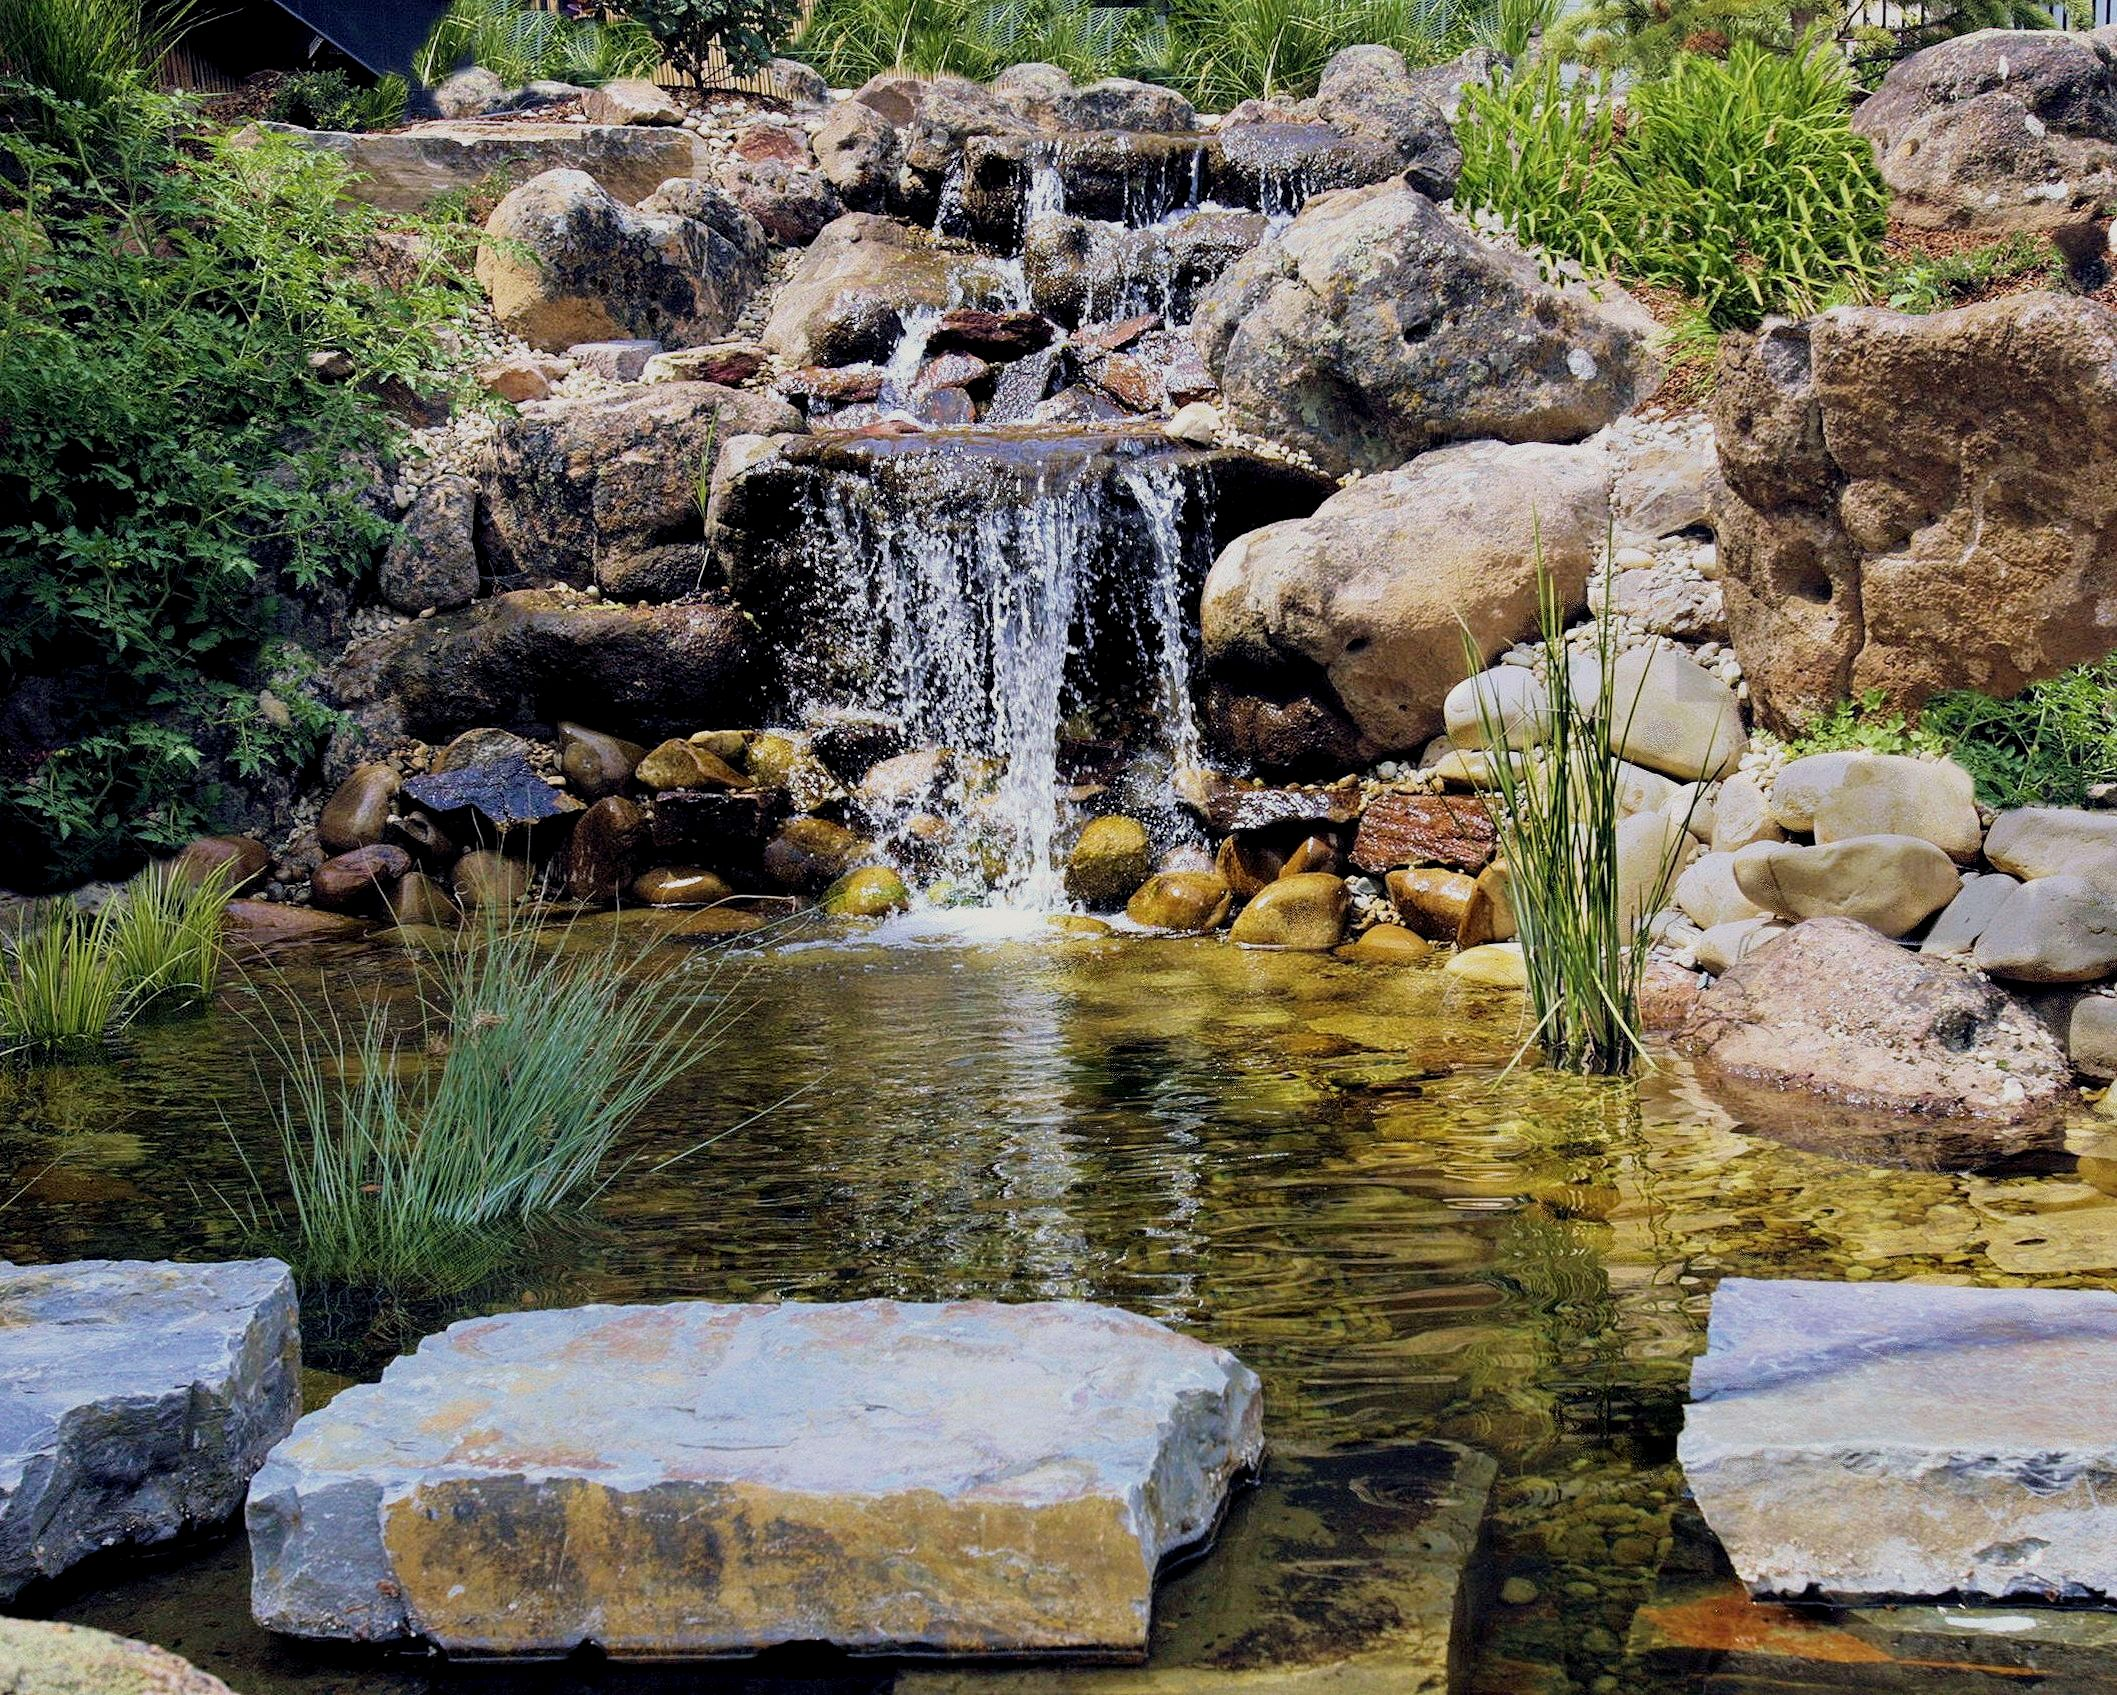 Waterfall Pond with Stepping Stones - 1 | The Garden Artist Boise, ID